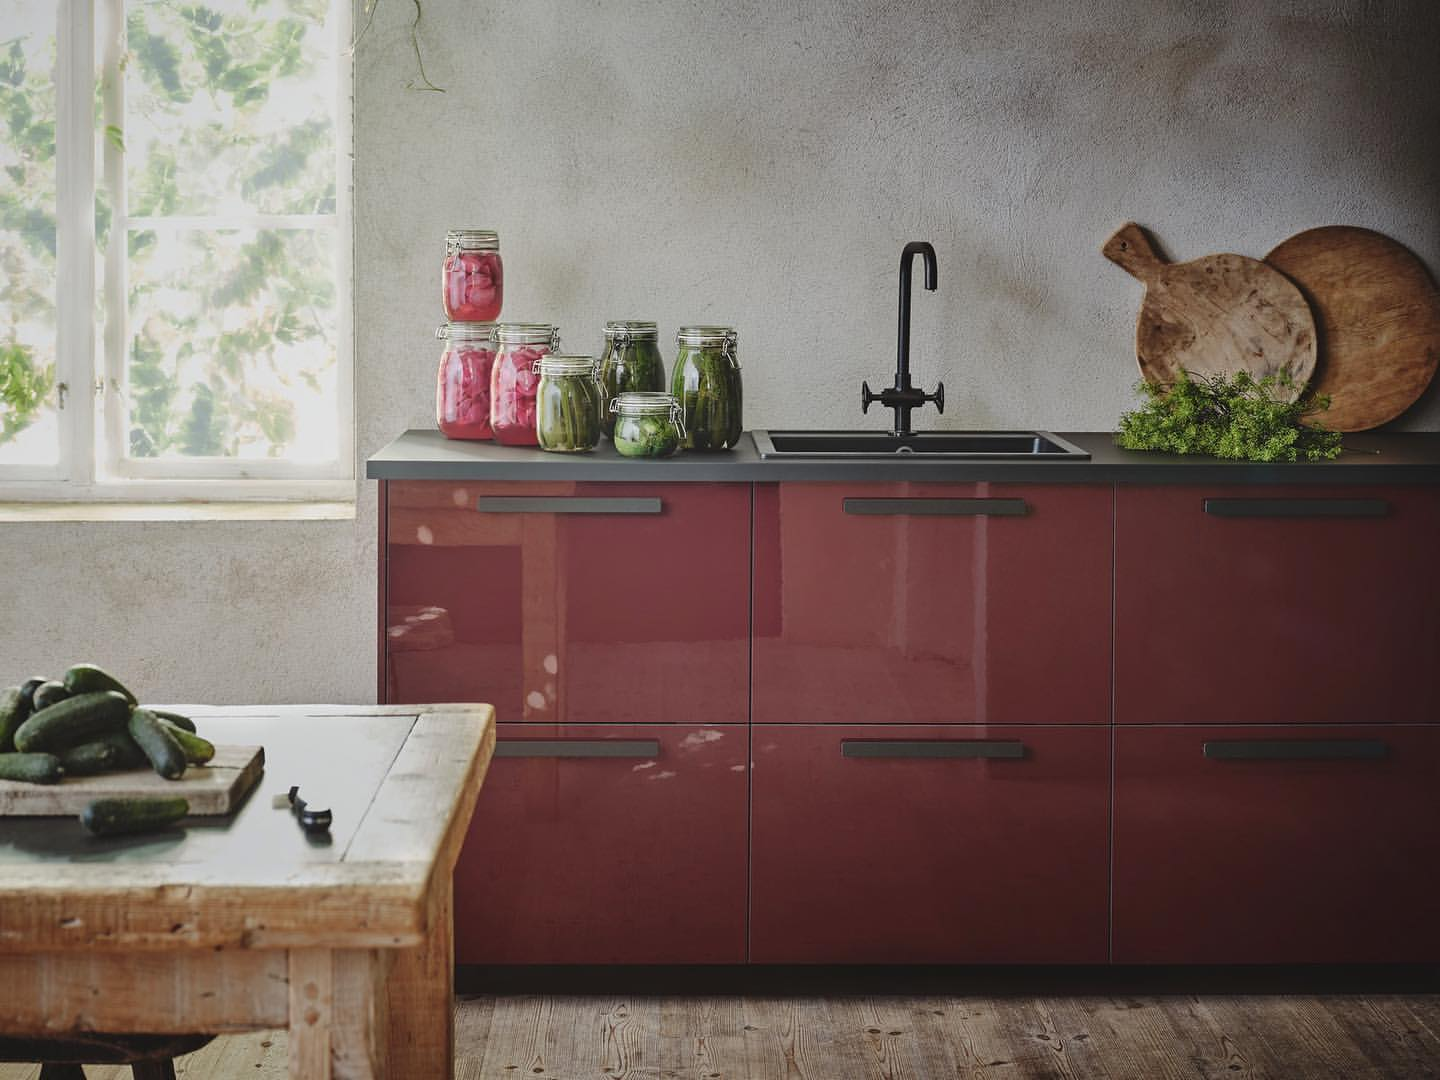 10 useful things for the kitchen from Ikea: the choice of Hodeys